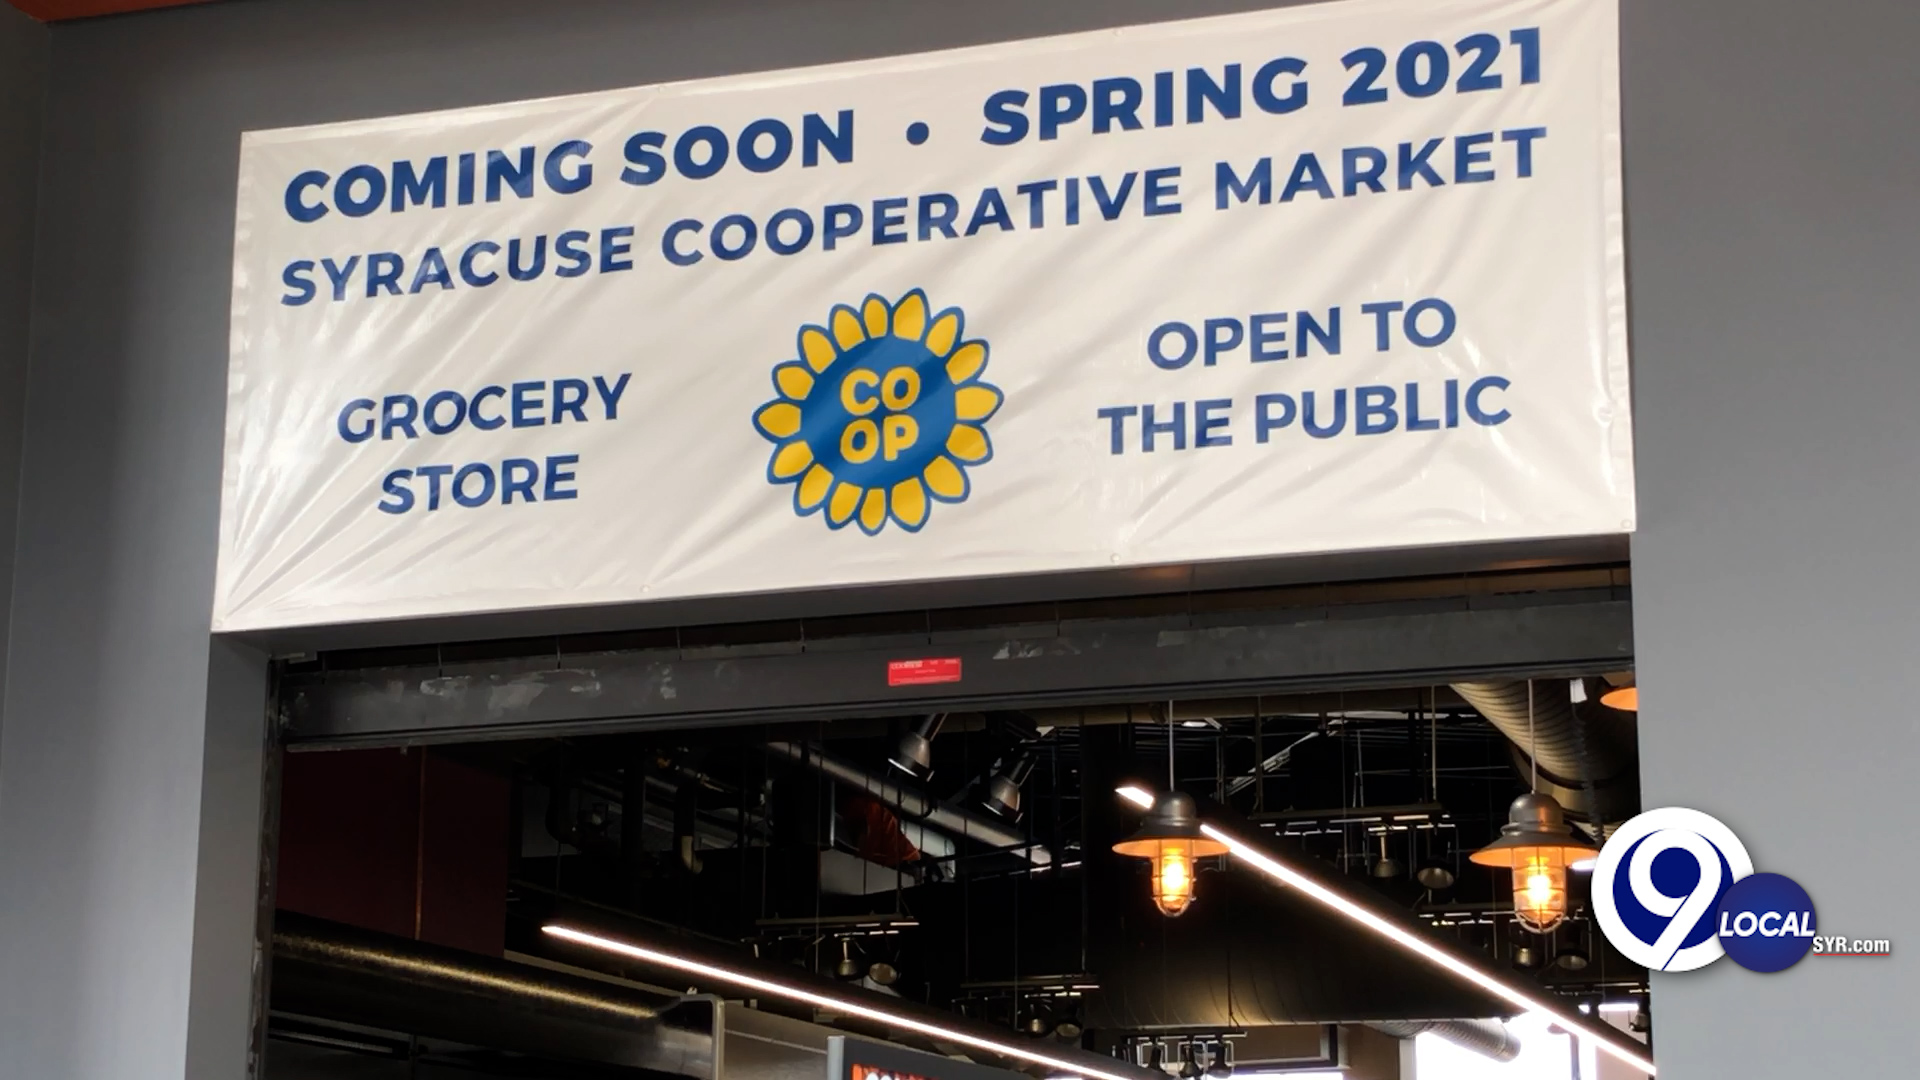 Syracuse Cooperative Market Sign